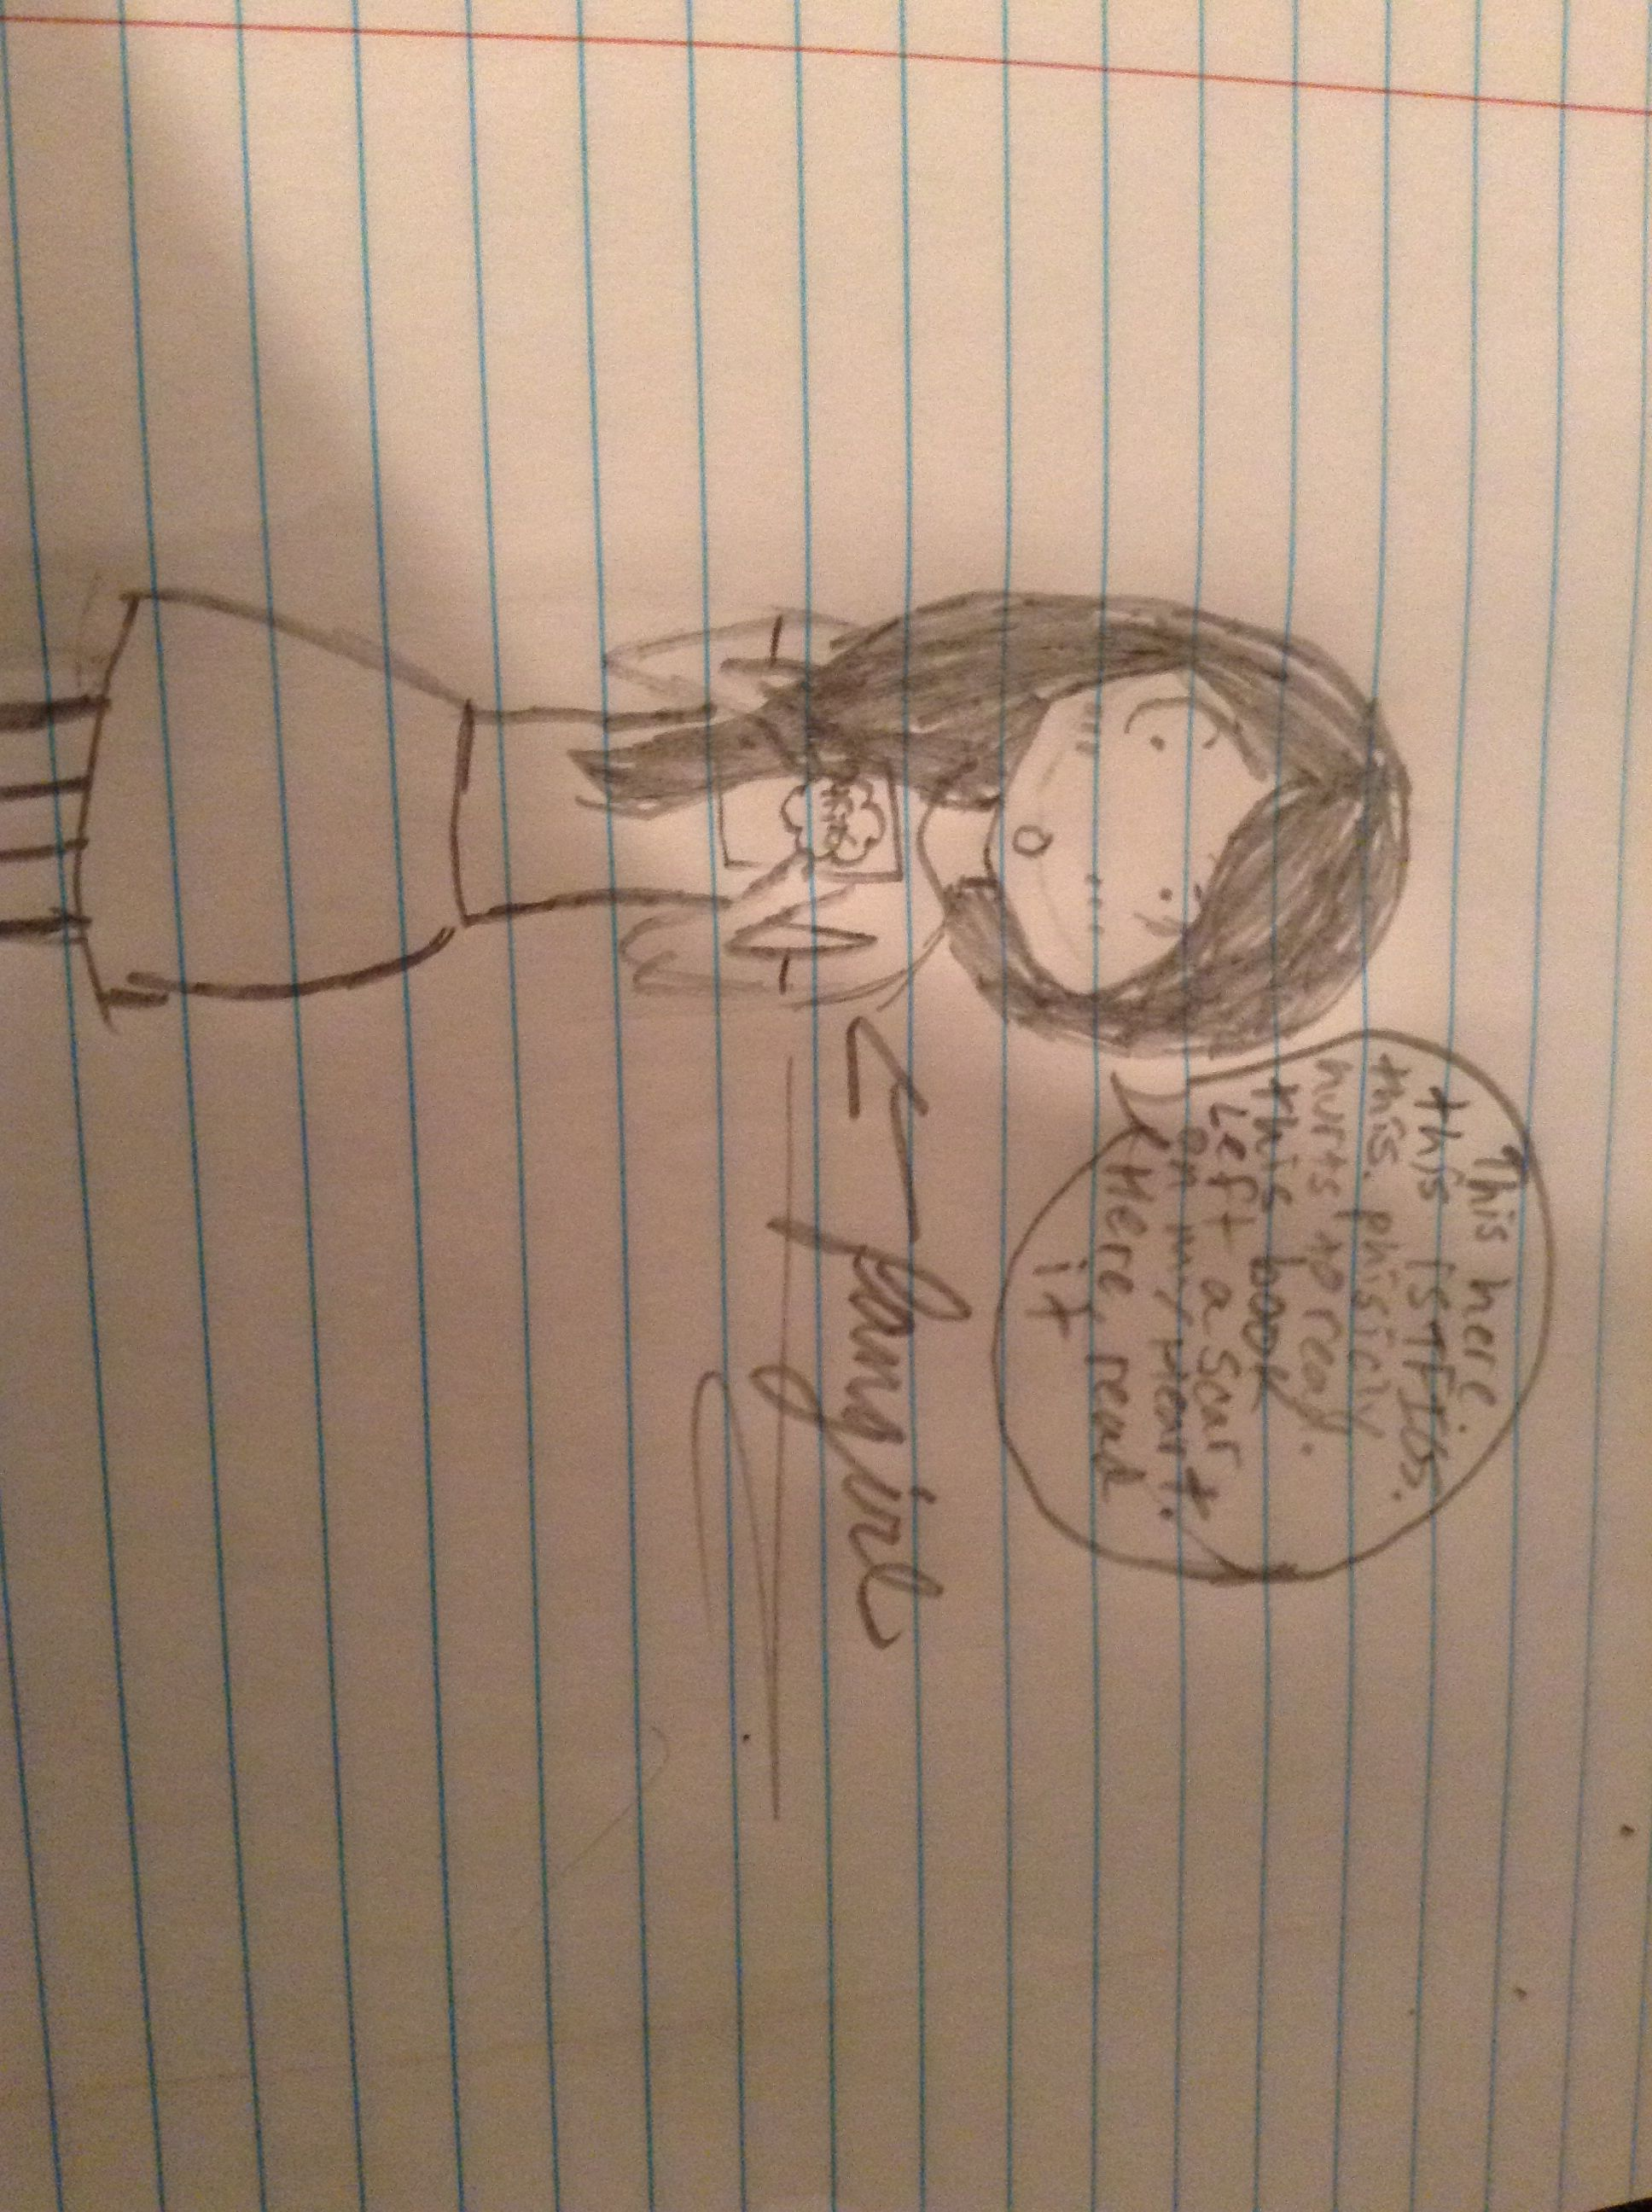 Some chick after reading TFIOS. Idk i was bored